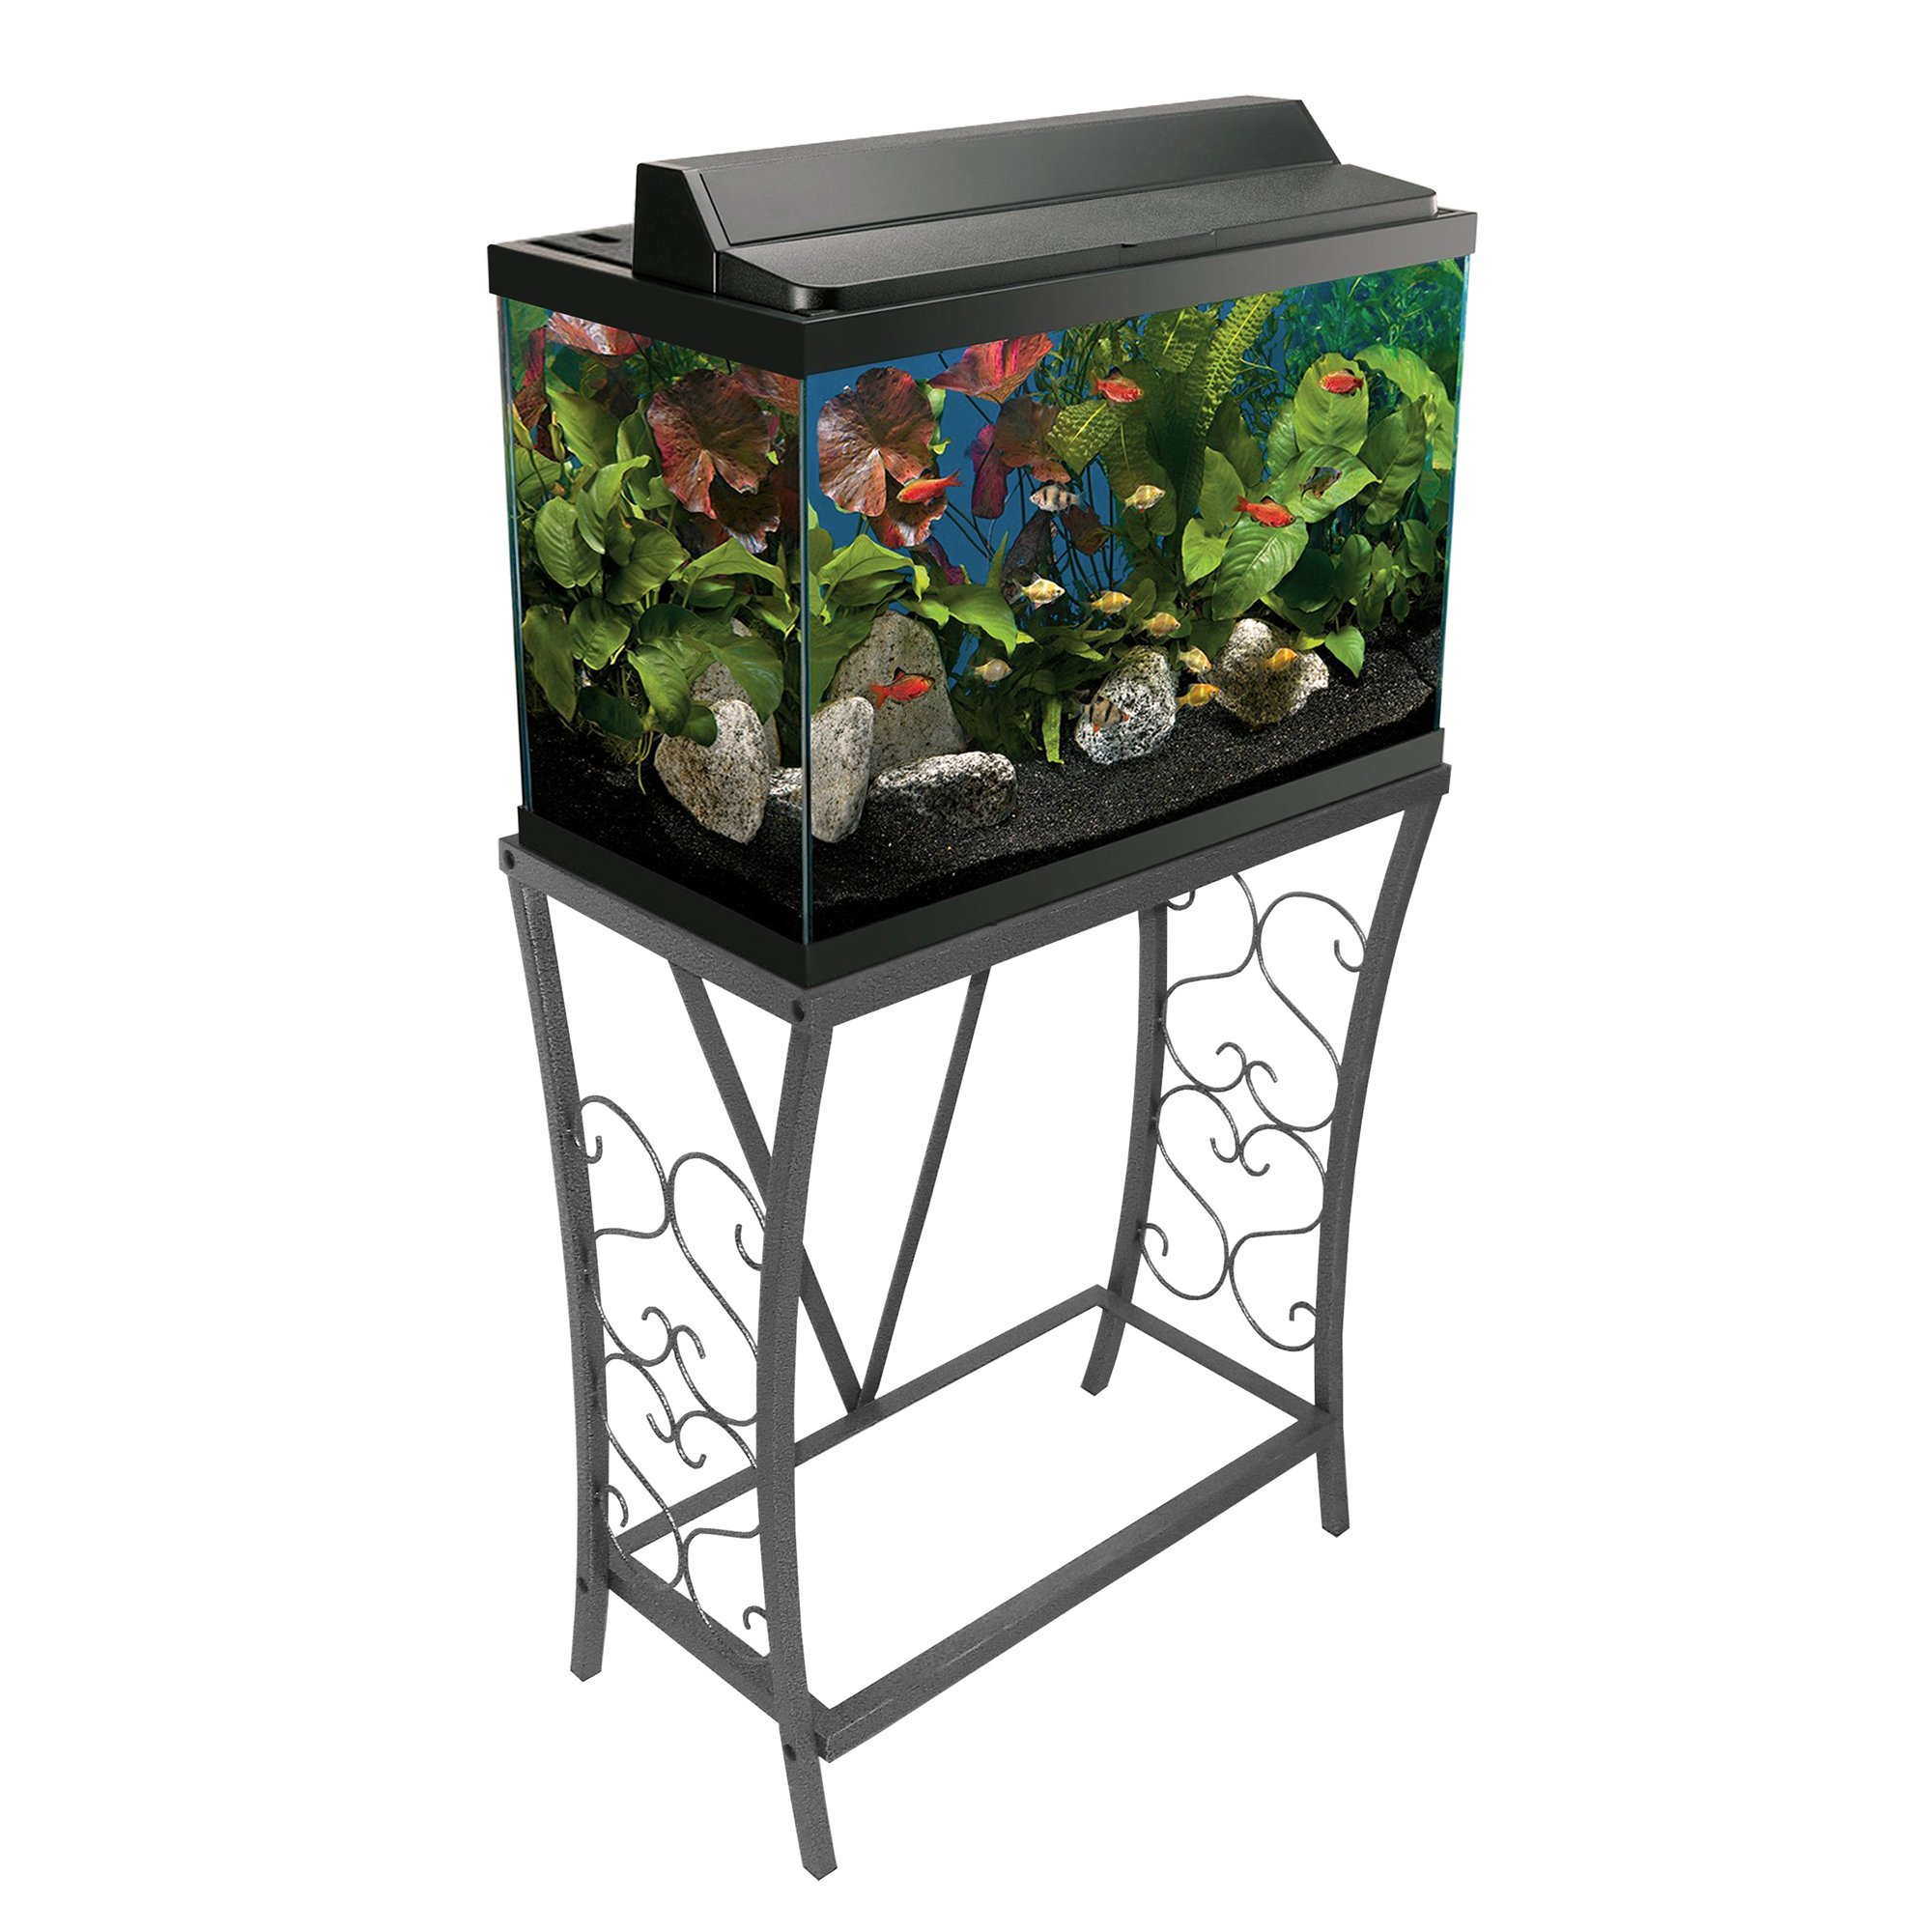 aquarium stand petco fundamentals black scroll aquarium